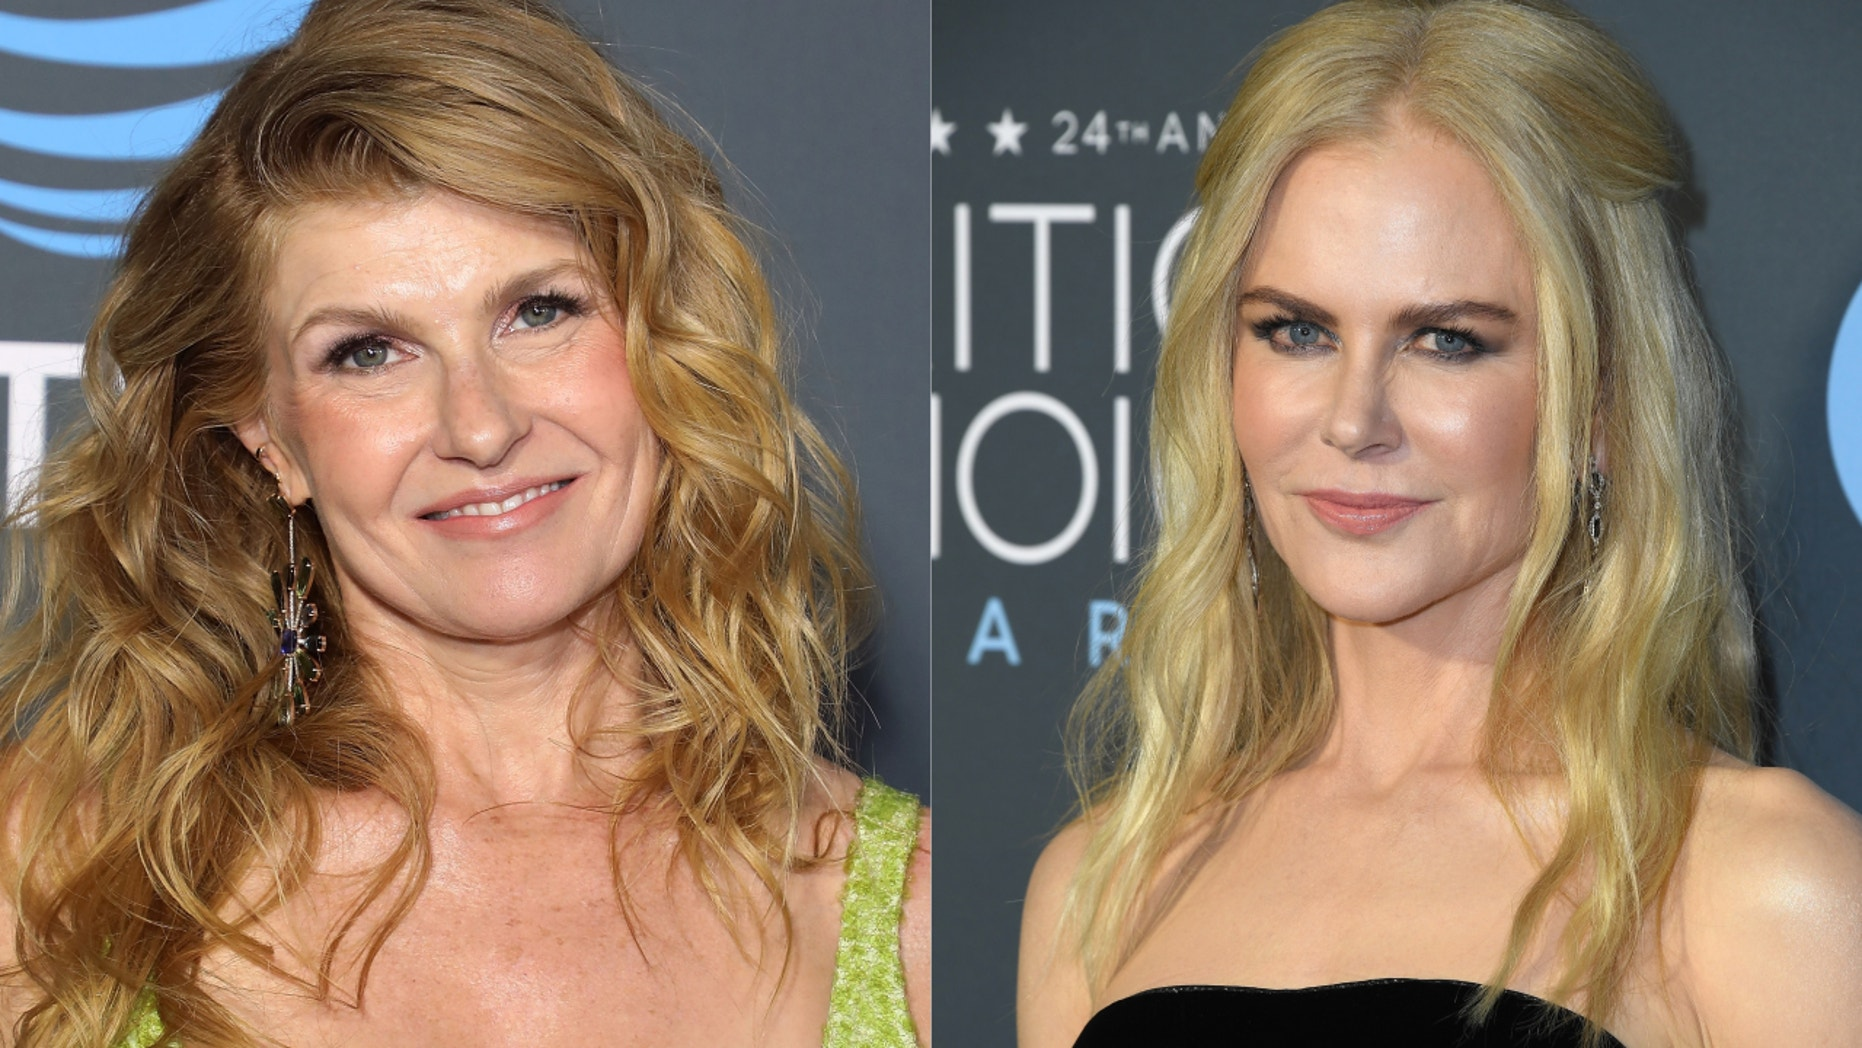 Connie Britton and Nicole Kidman